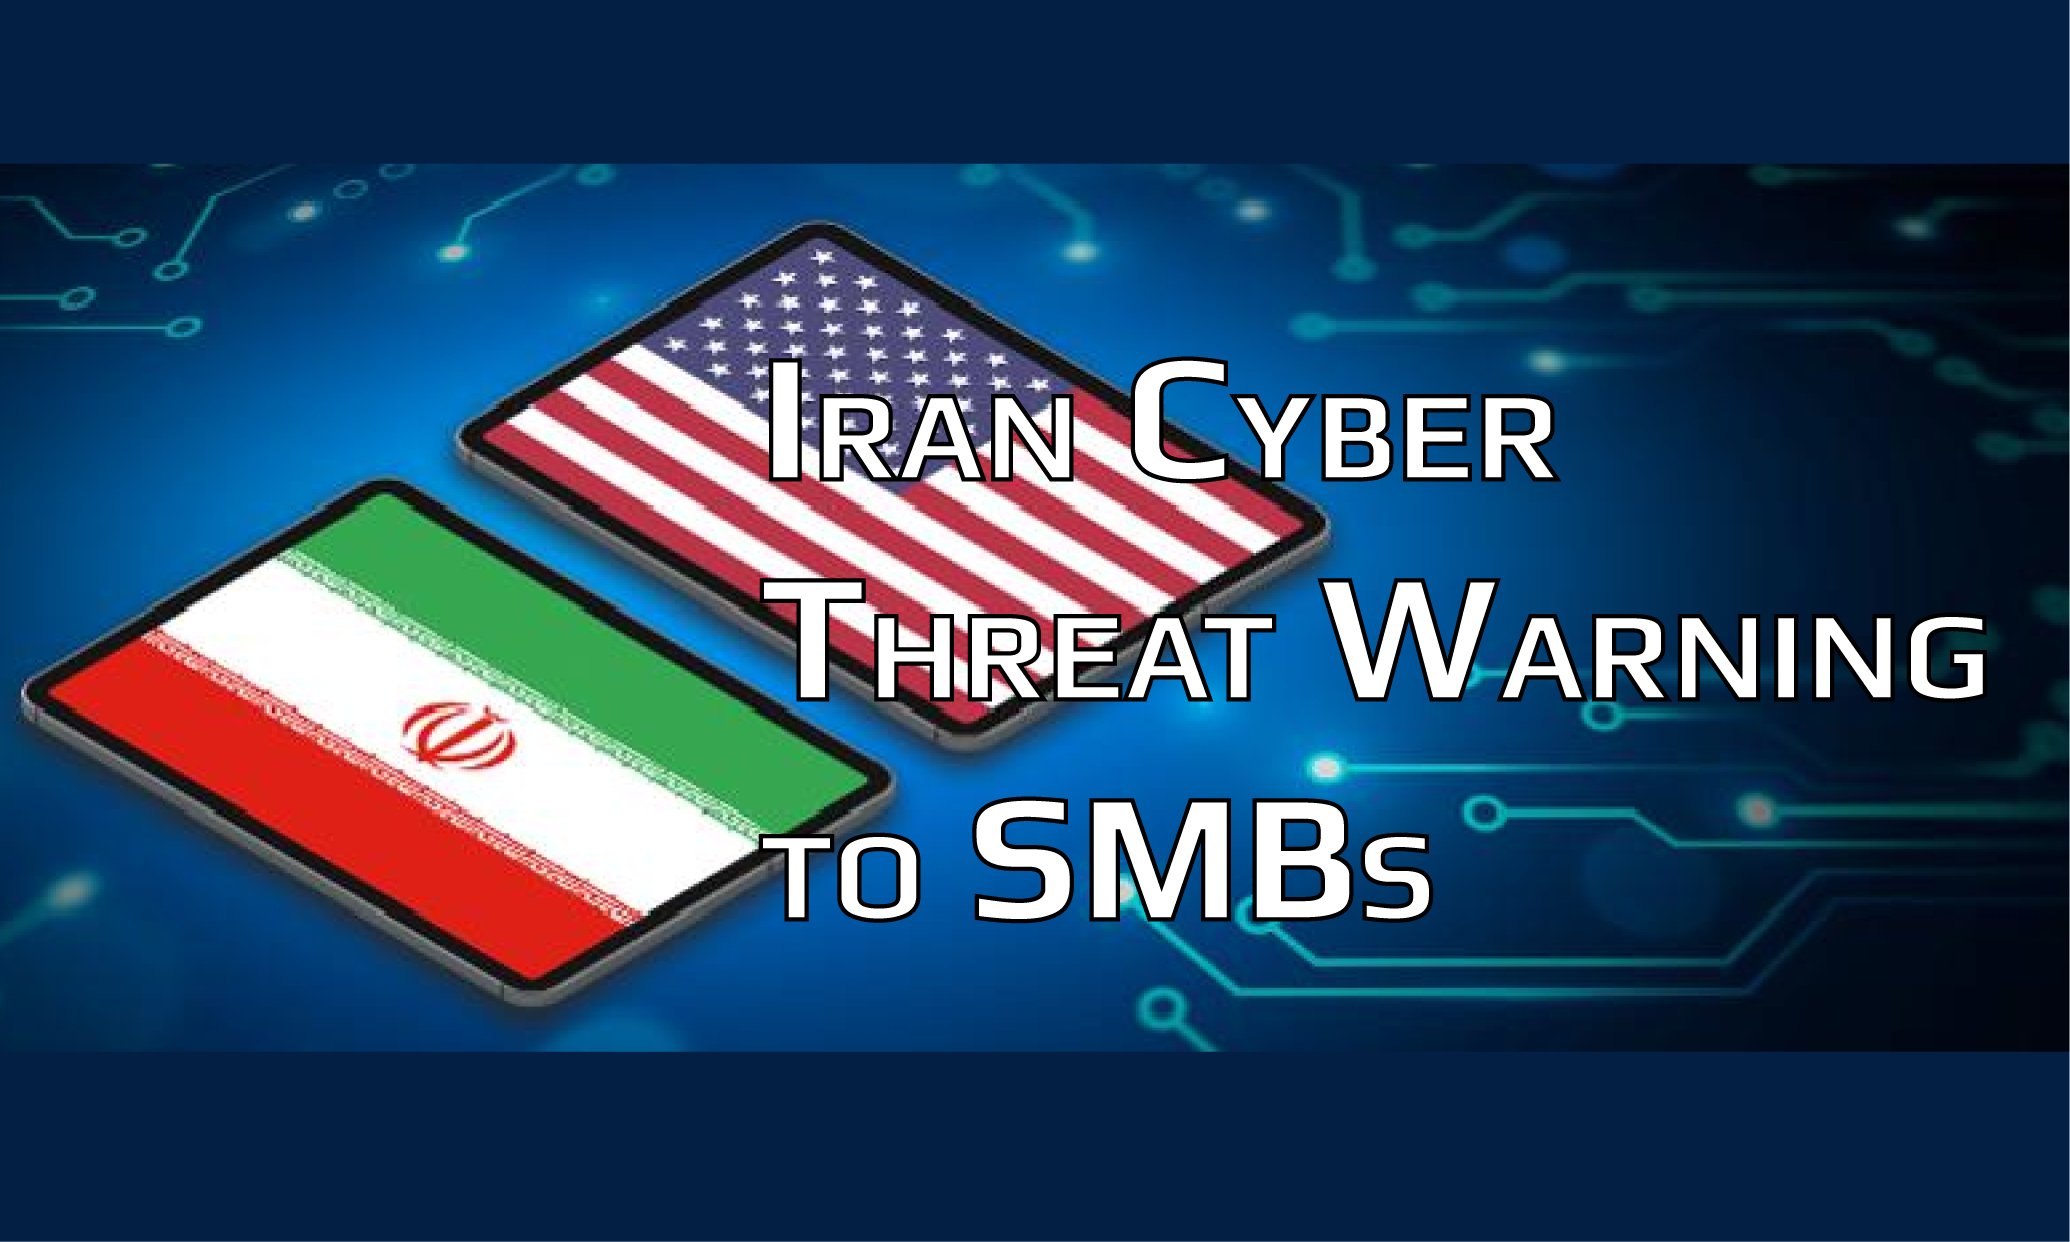 Iran Cyber Attack Warning